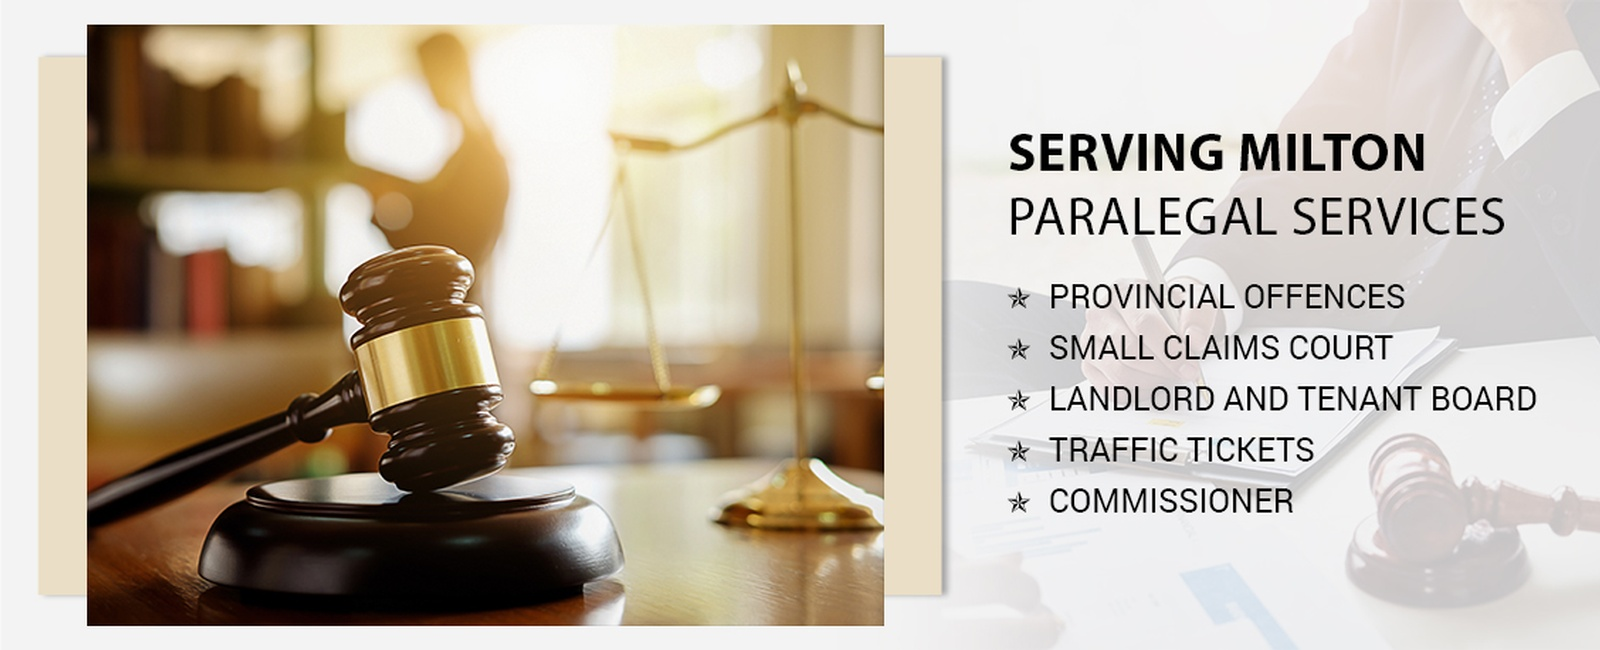 Paralegal services in Milton